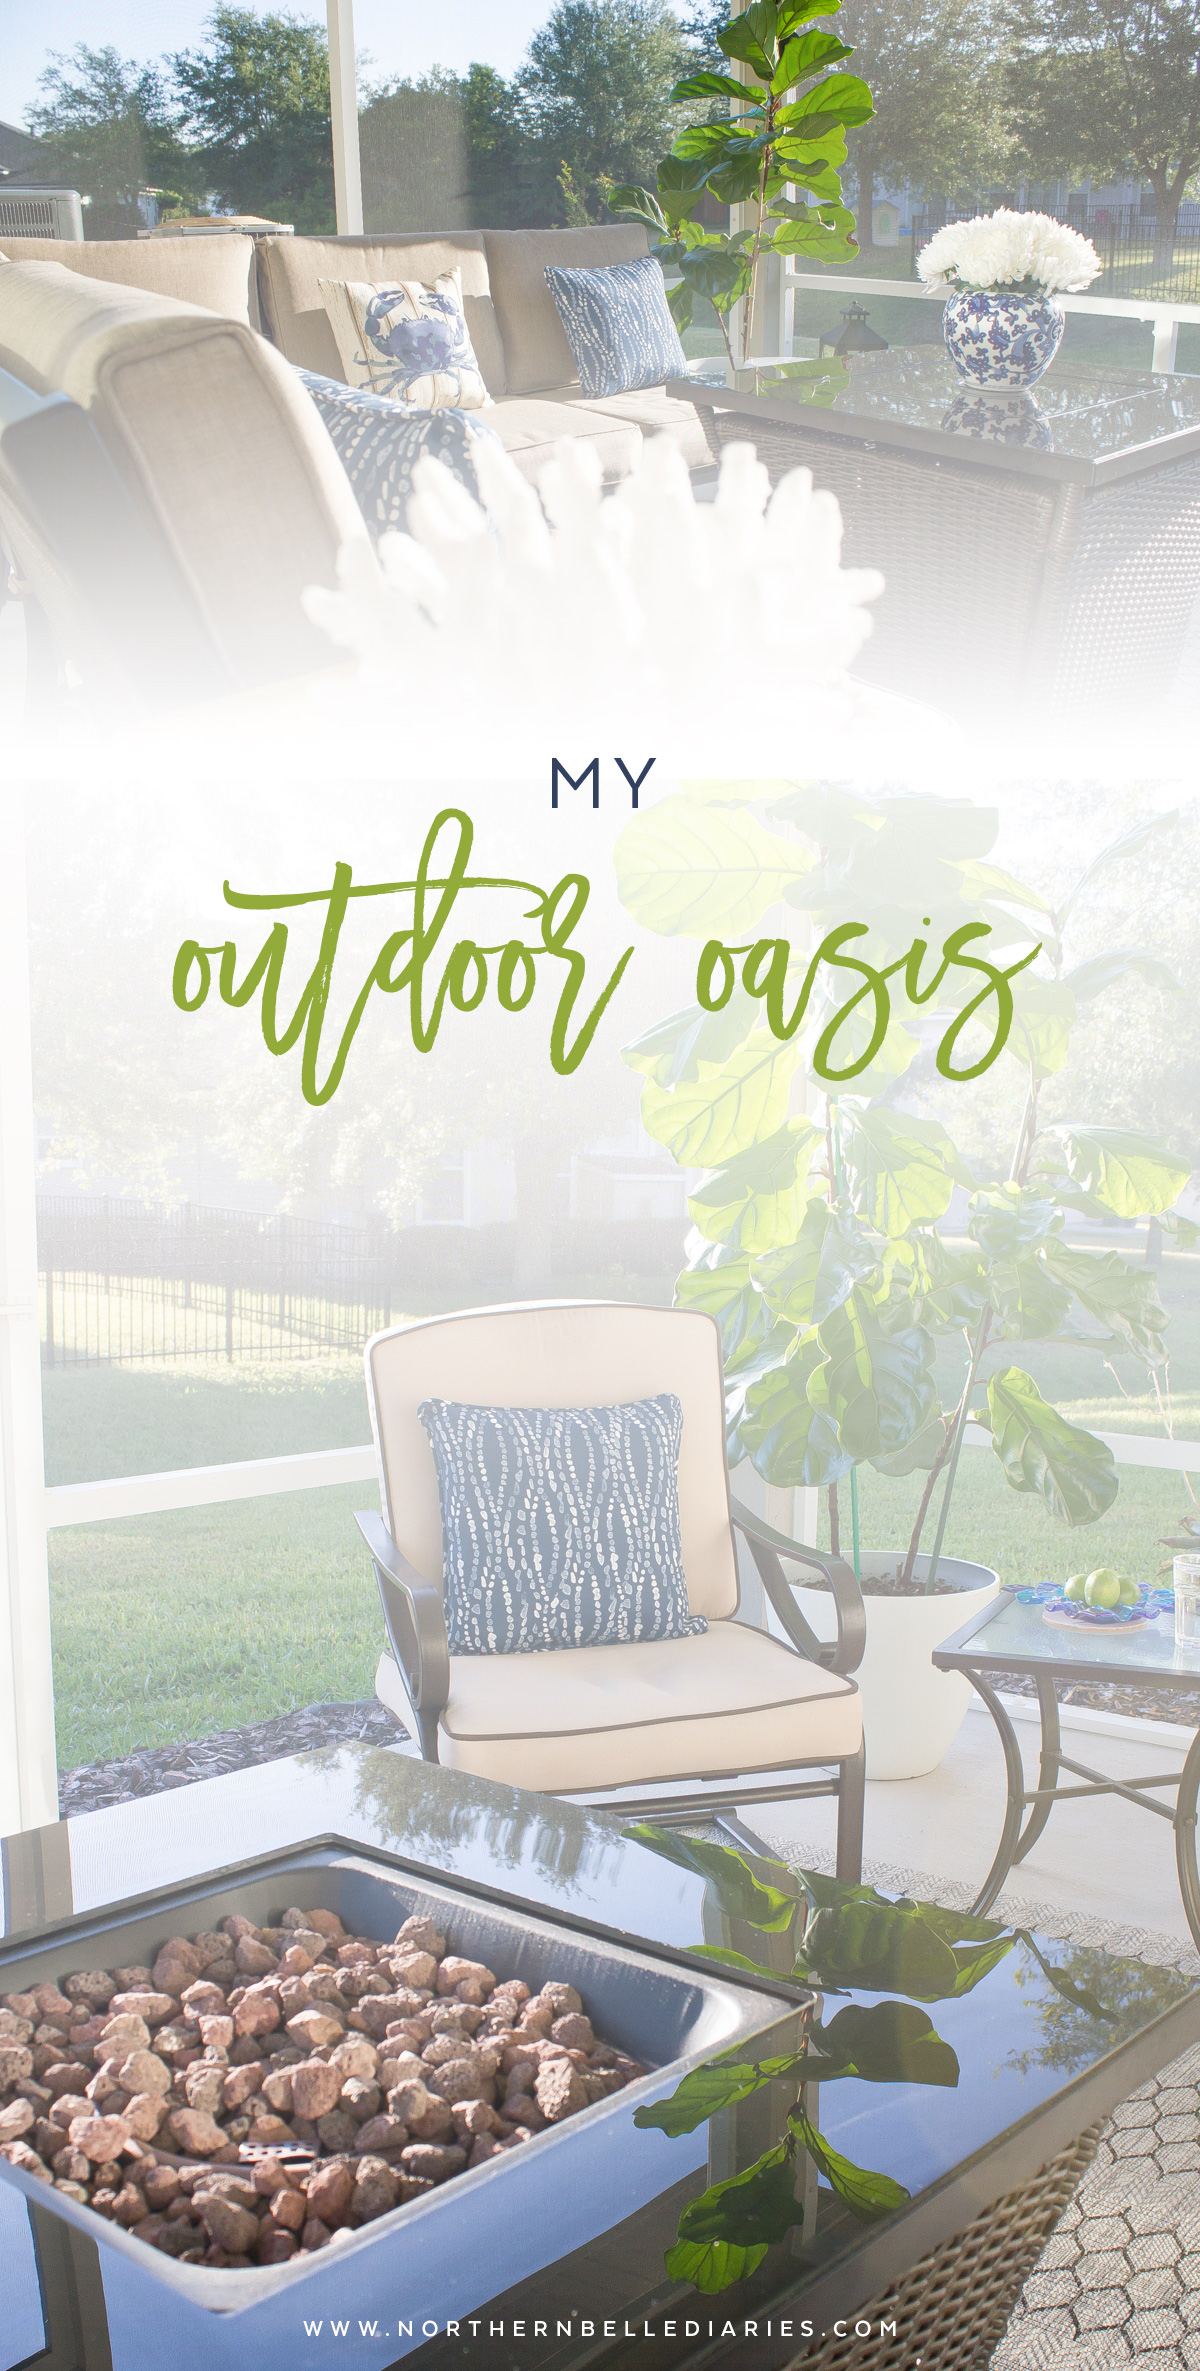 Affordable patio makeover with Lowe's #MyOutdoorOasis #ad - La La Lisette